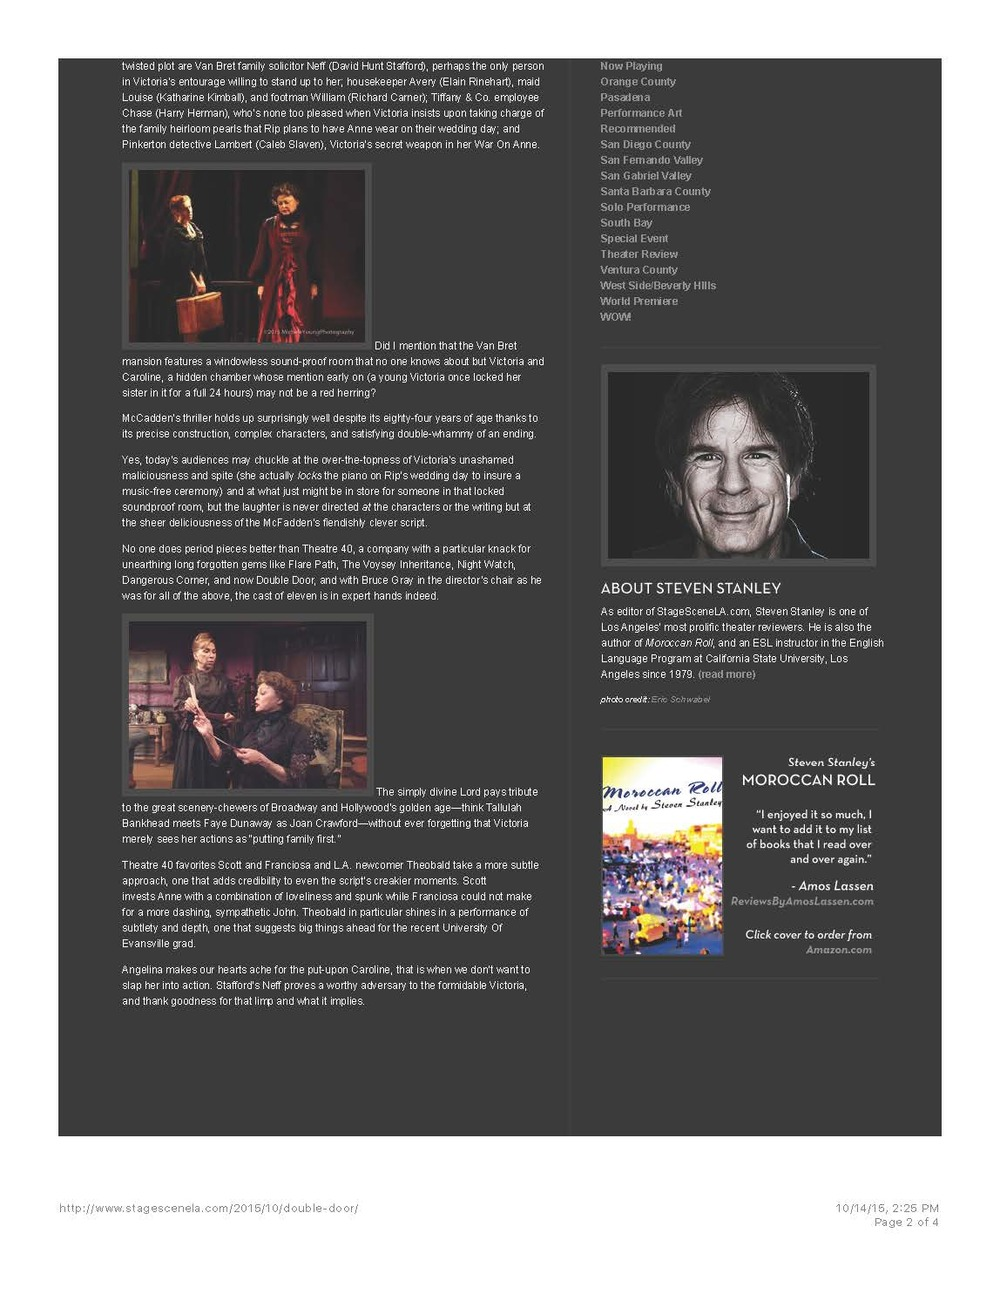 StageSceneLA Press_Page_2.jpg